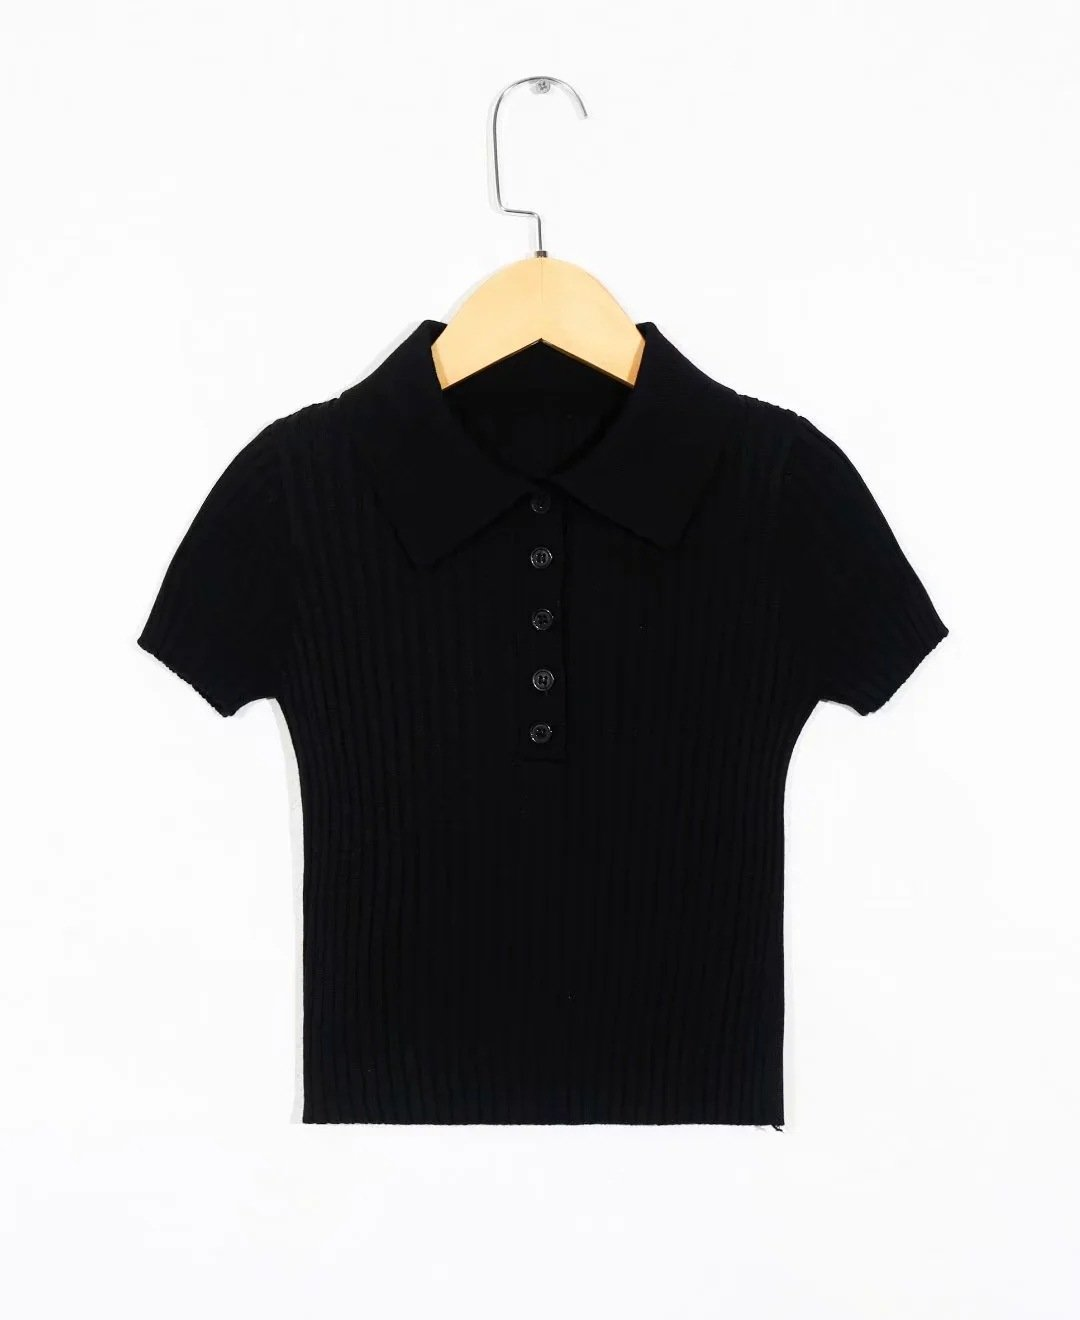 Polo collar short-sleeved T-shirt with exposed navel knitted cardigan